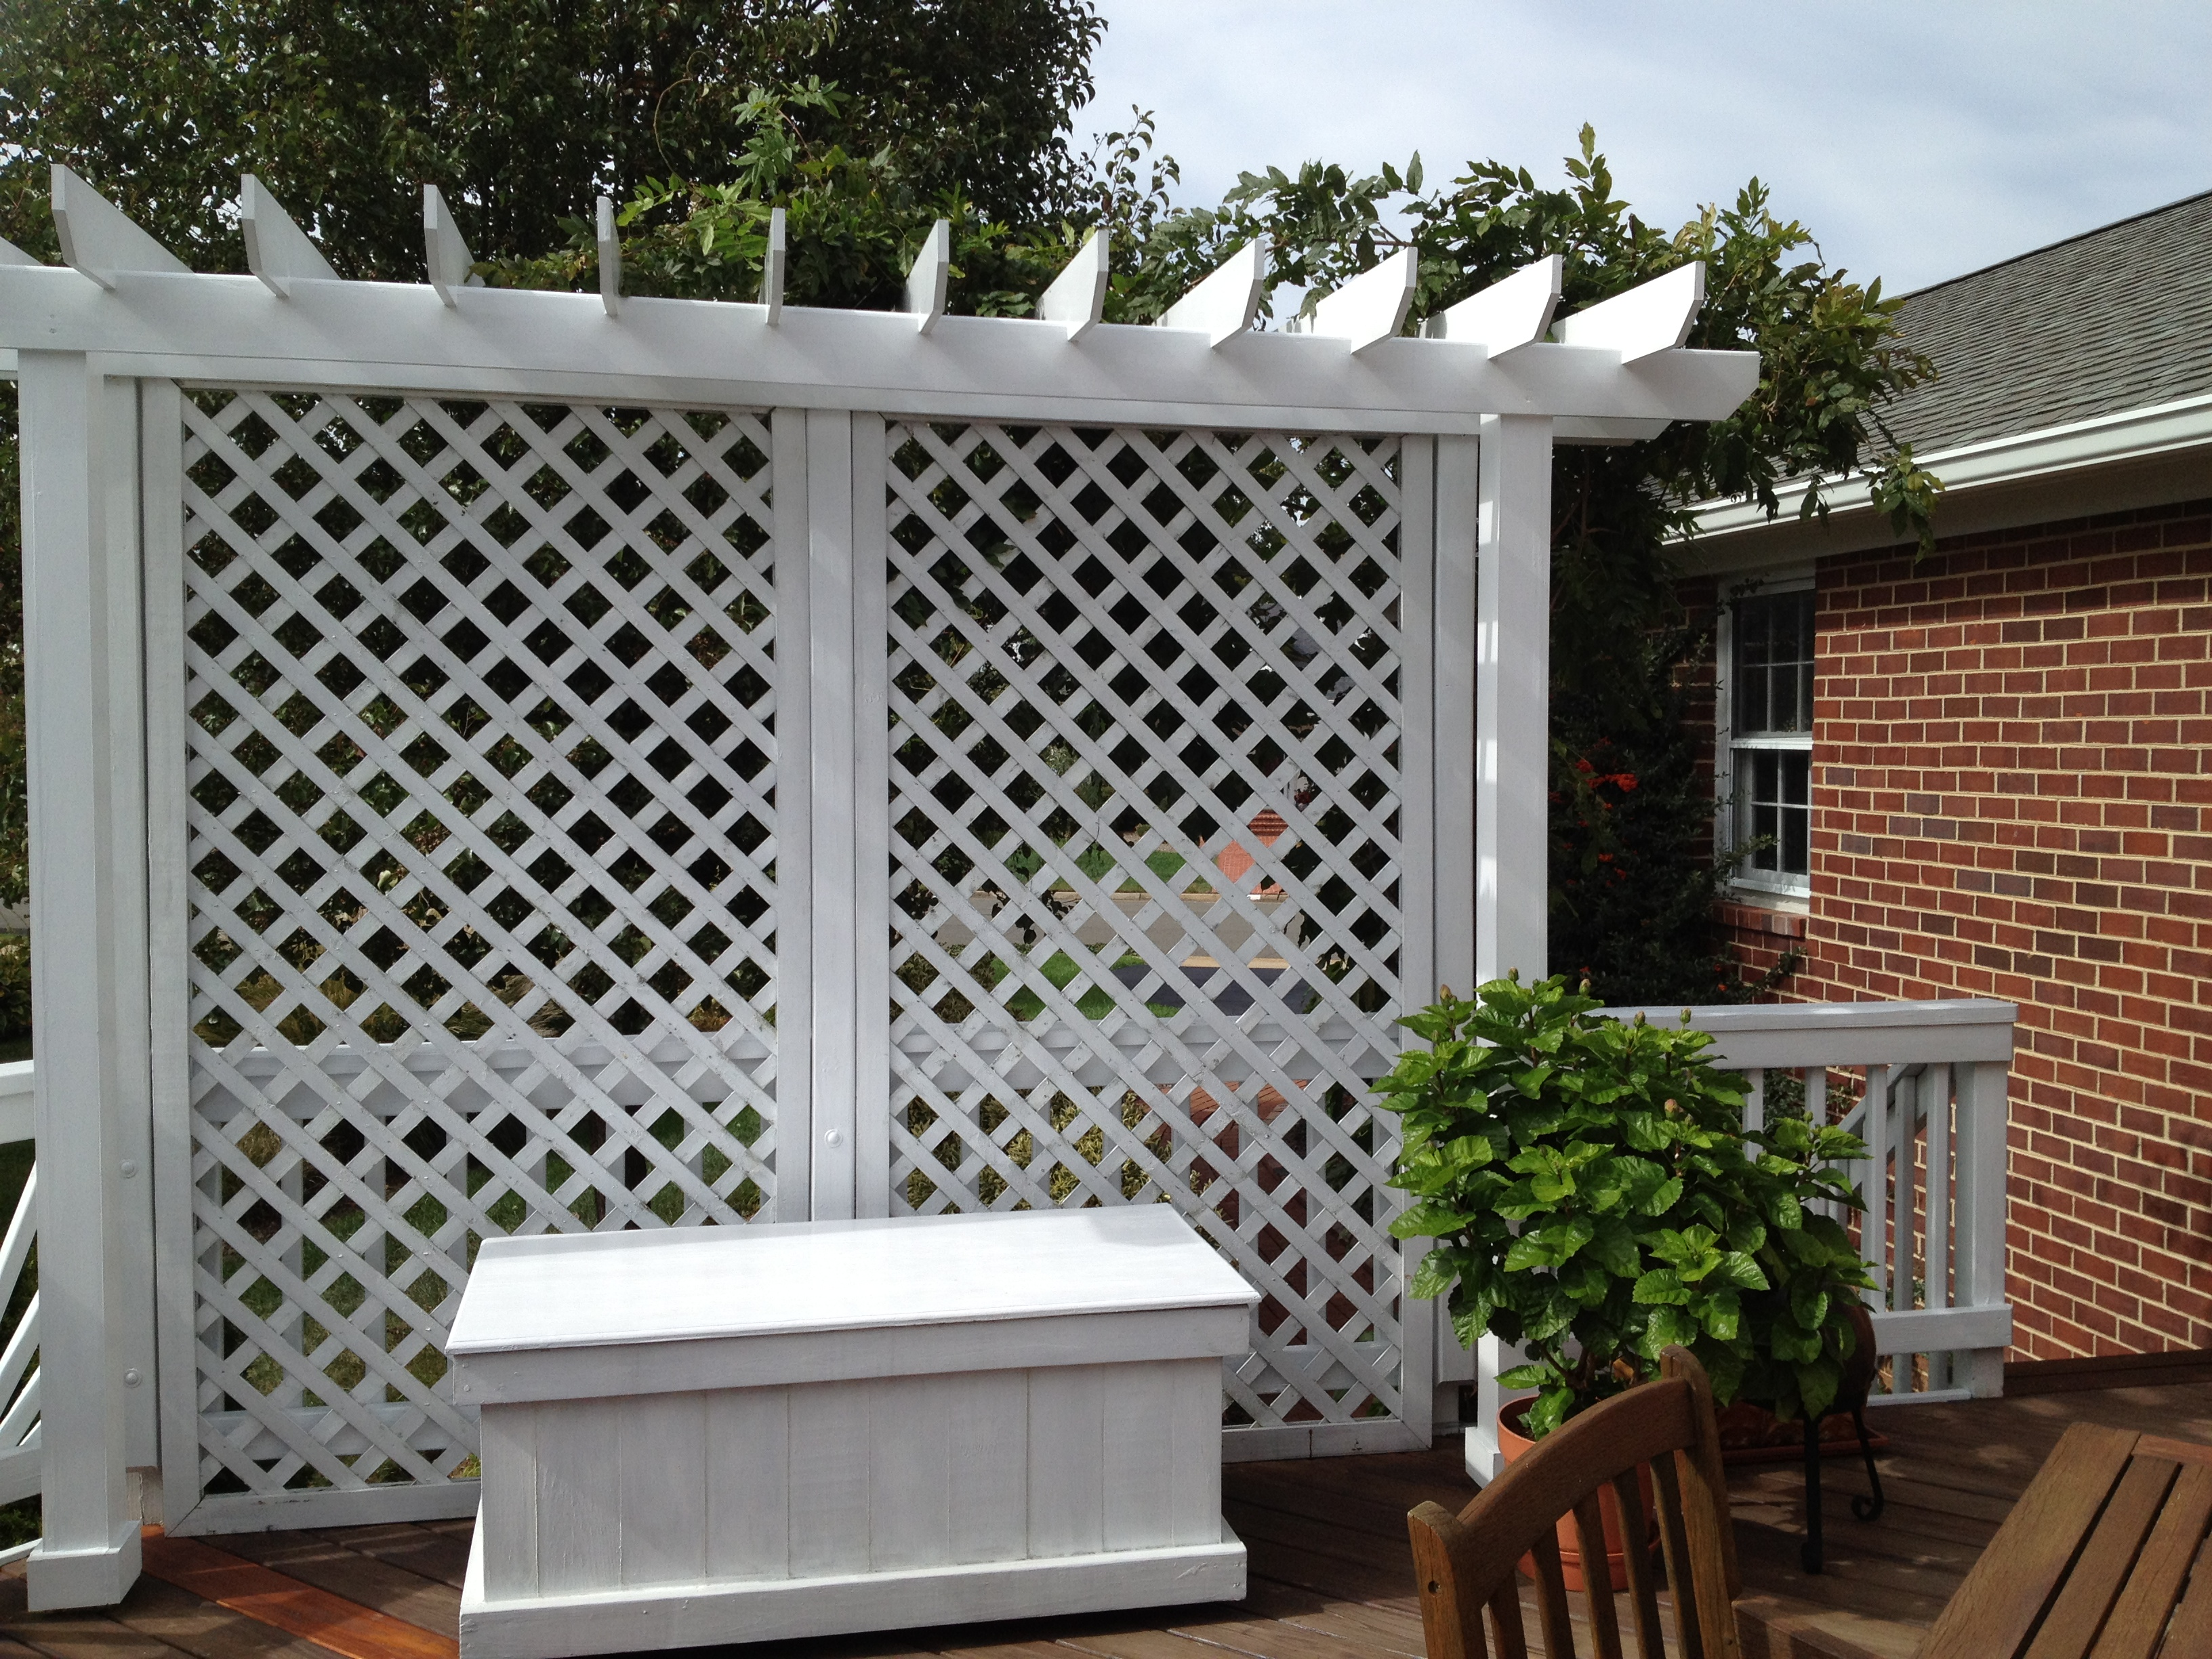 Lisa earthgirl gardening tips and helpful advice 2013 for Lattice for privacy on patio